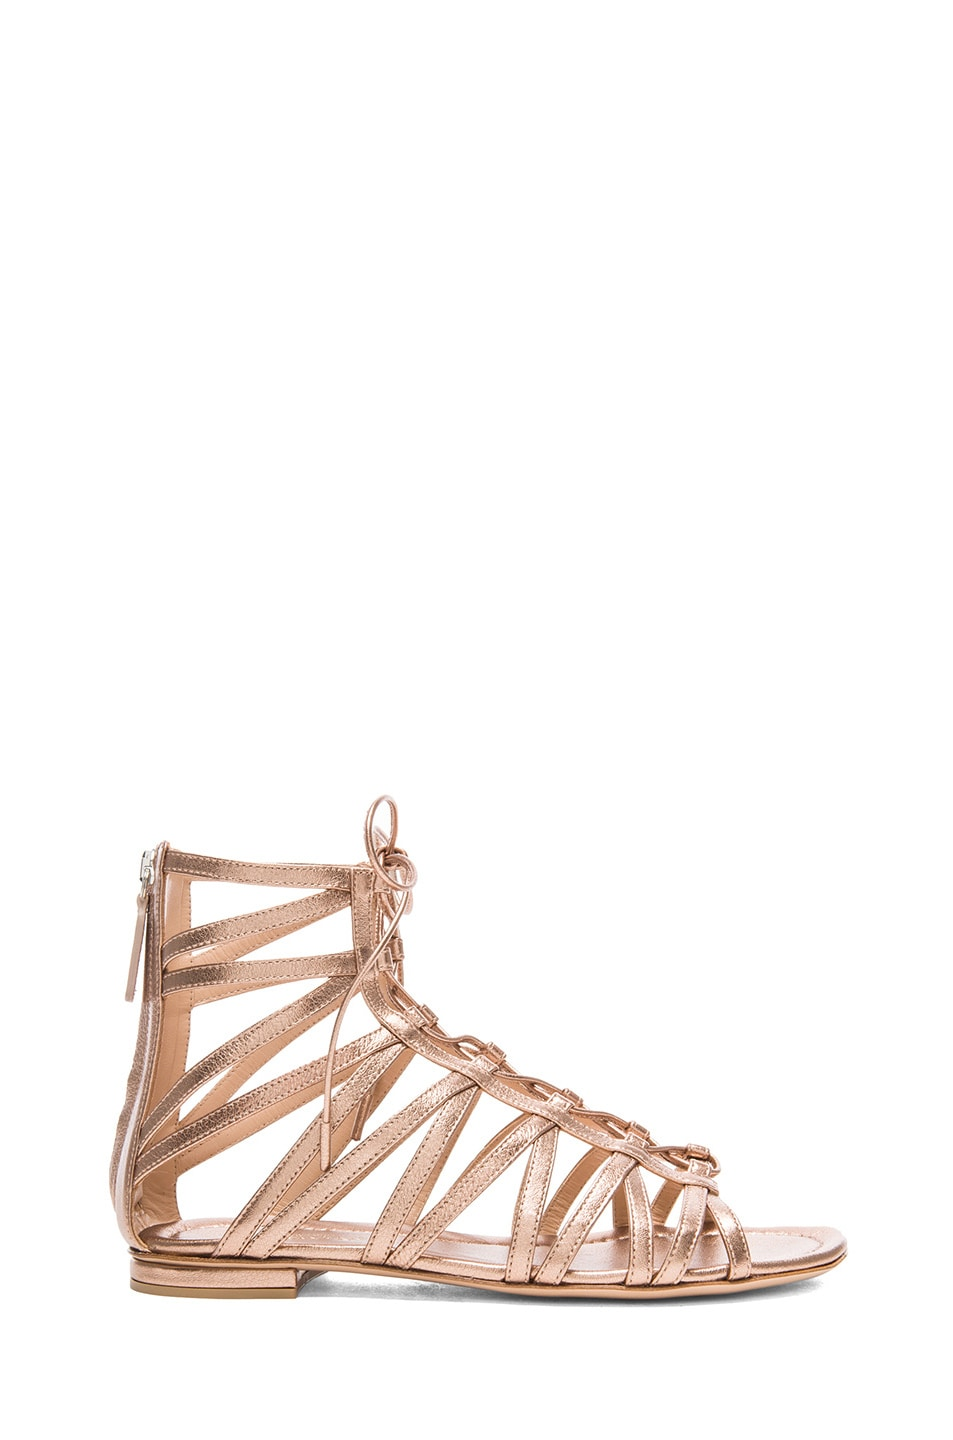 Image 1 of Gianvito Rossi Gladiator Metallic Leather Sandals in Rose Gold